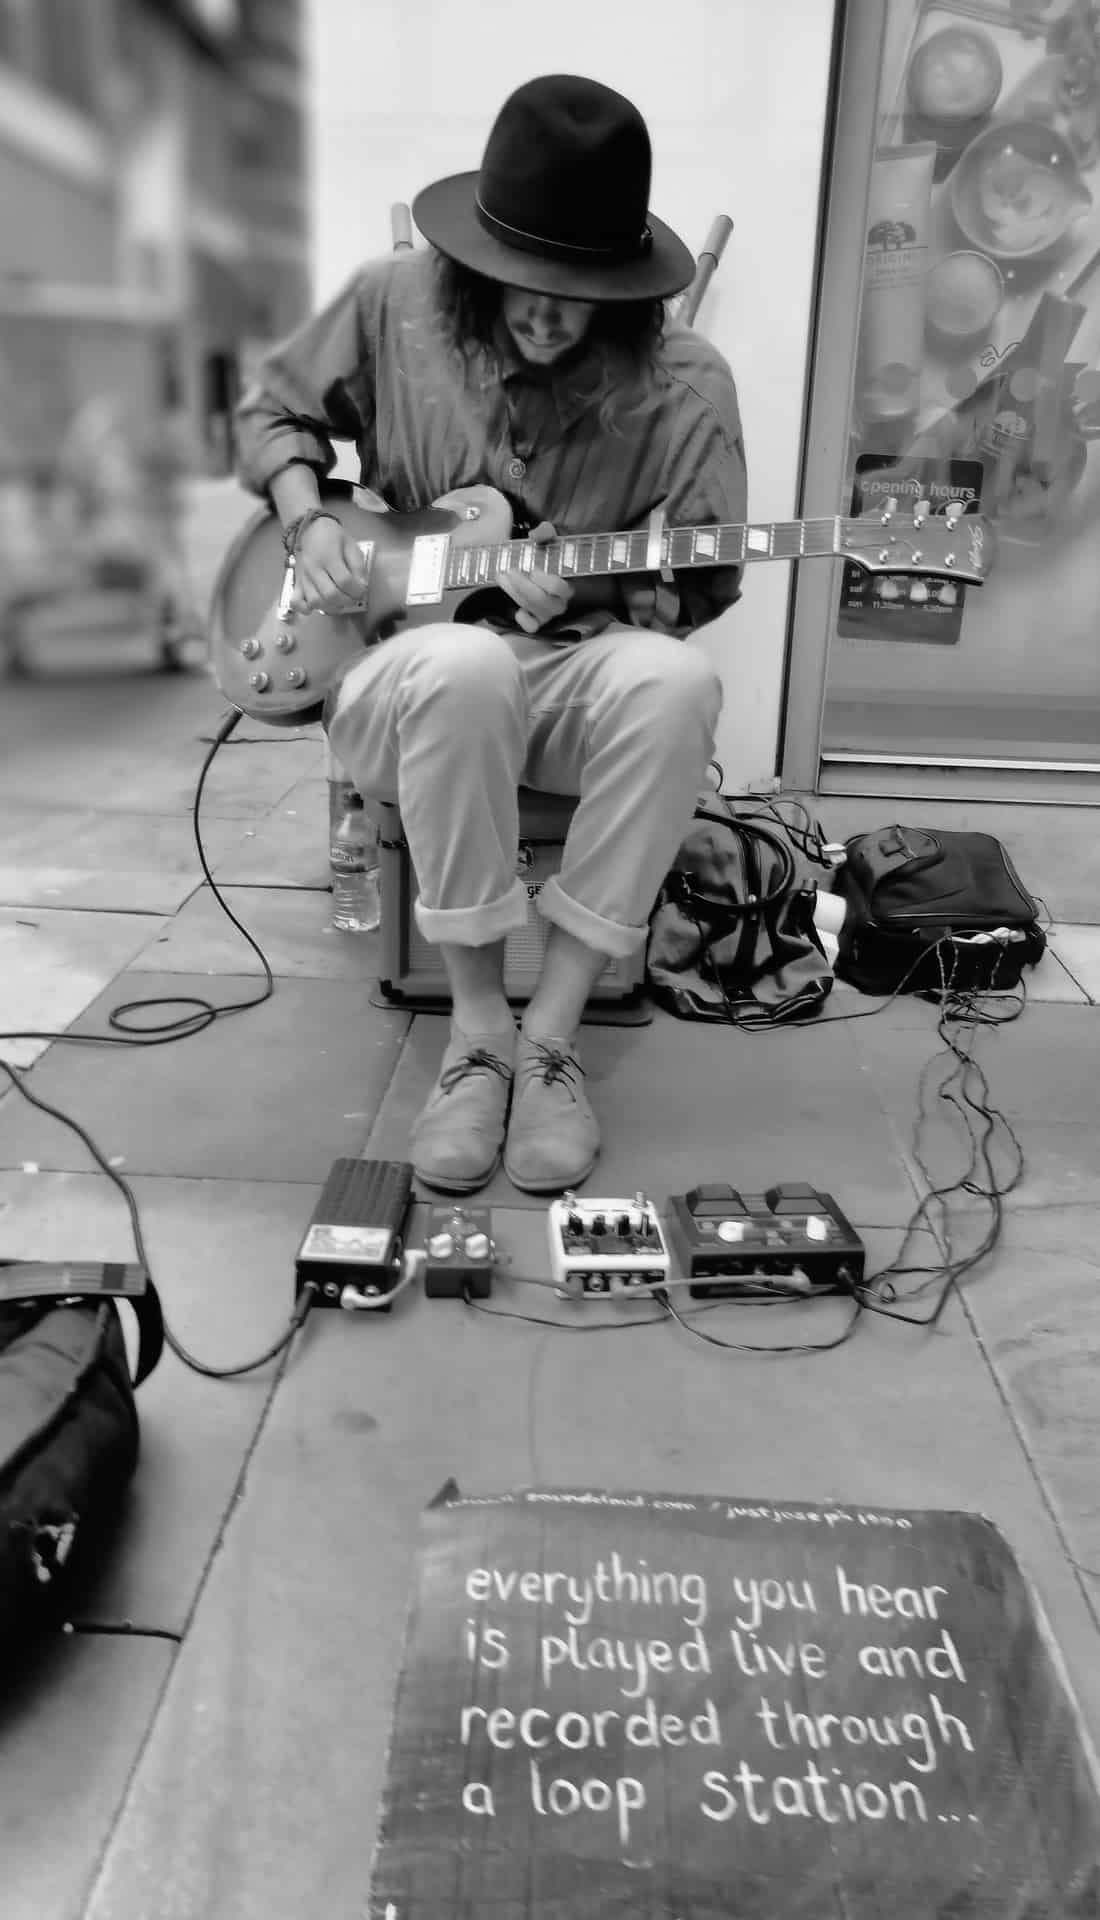 busker using a capo as part of his setup